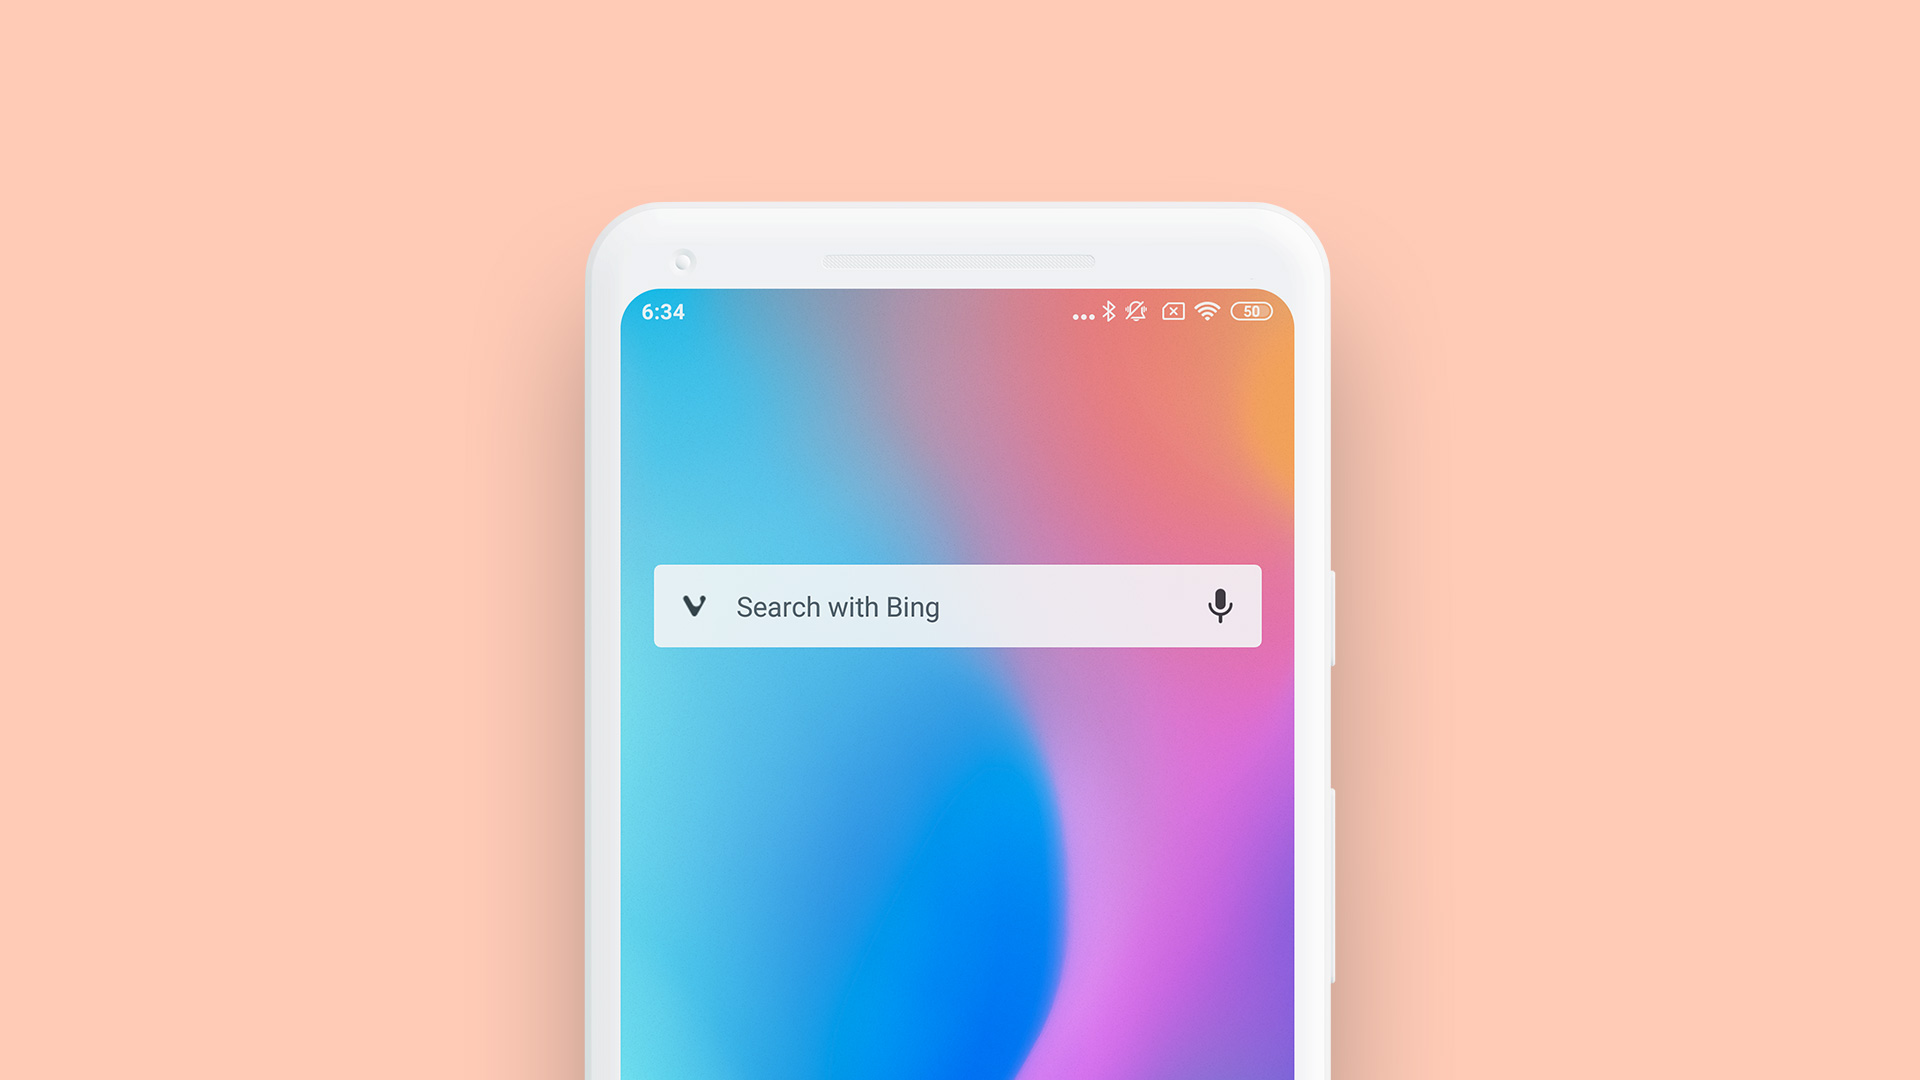 Vivaldi search widget displayed on an Android homescreen